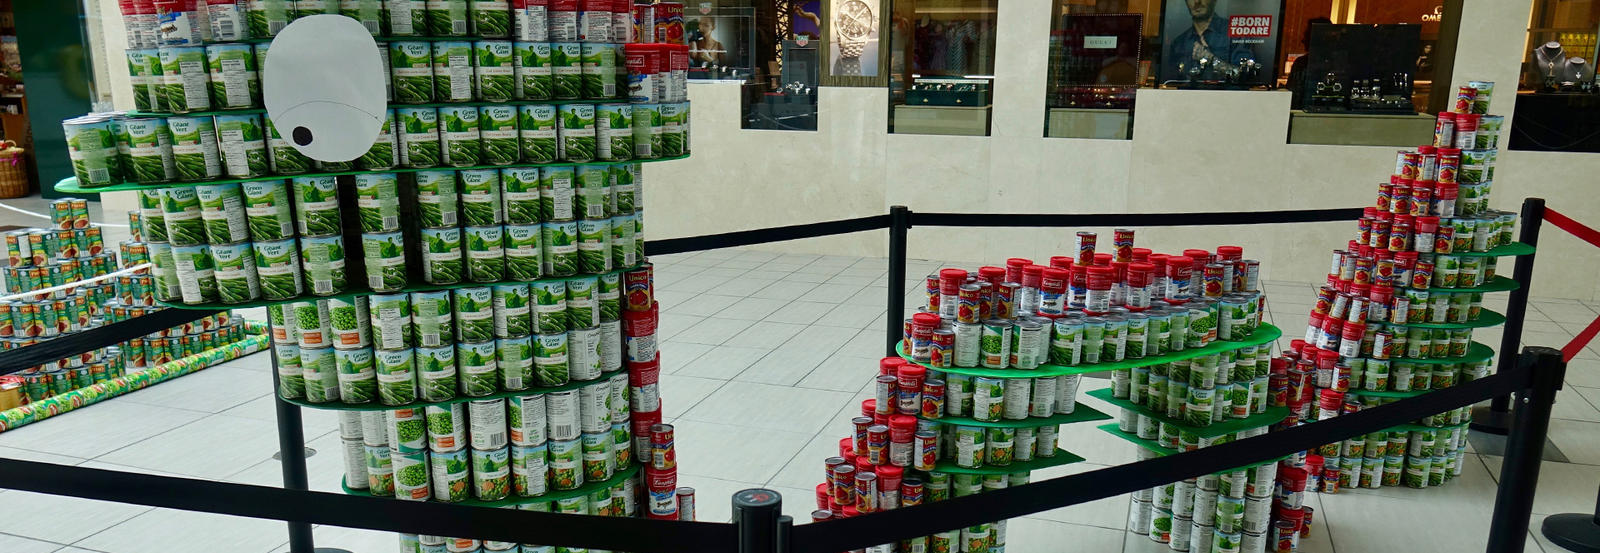 Image of Loch Ness Monster 2018 Canstruction build